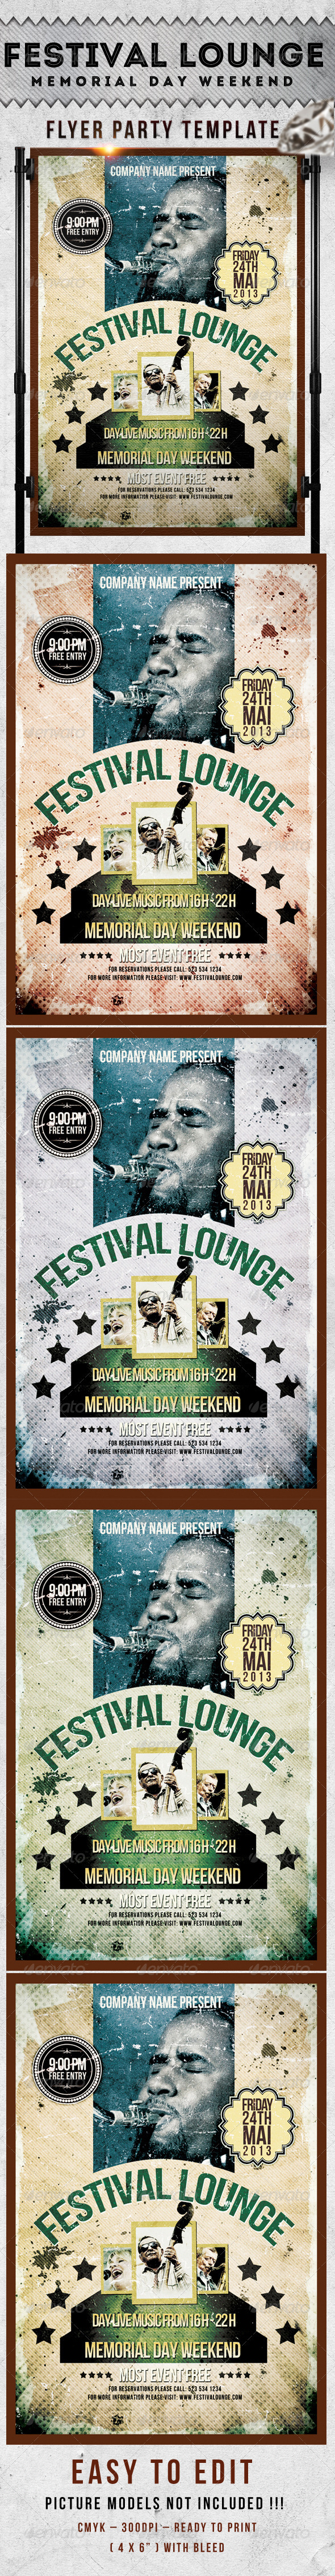 Festival Lounge Flyer Template - Events Flyers